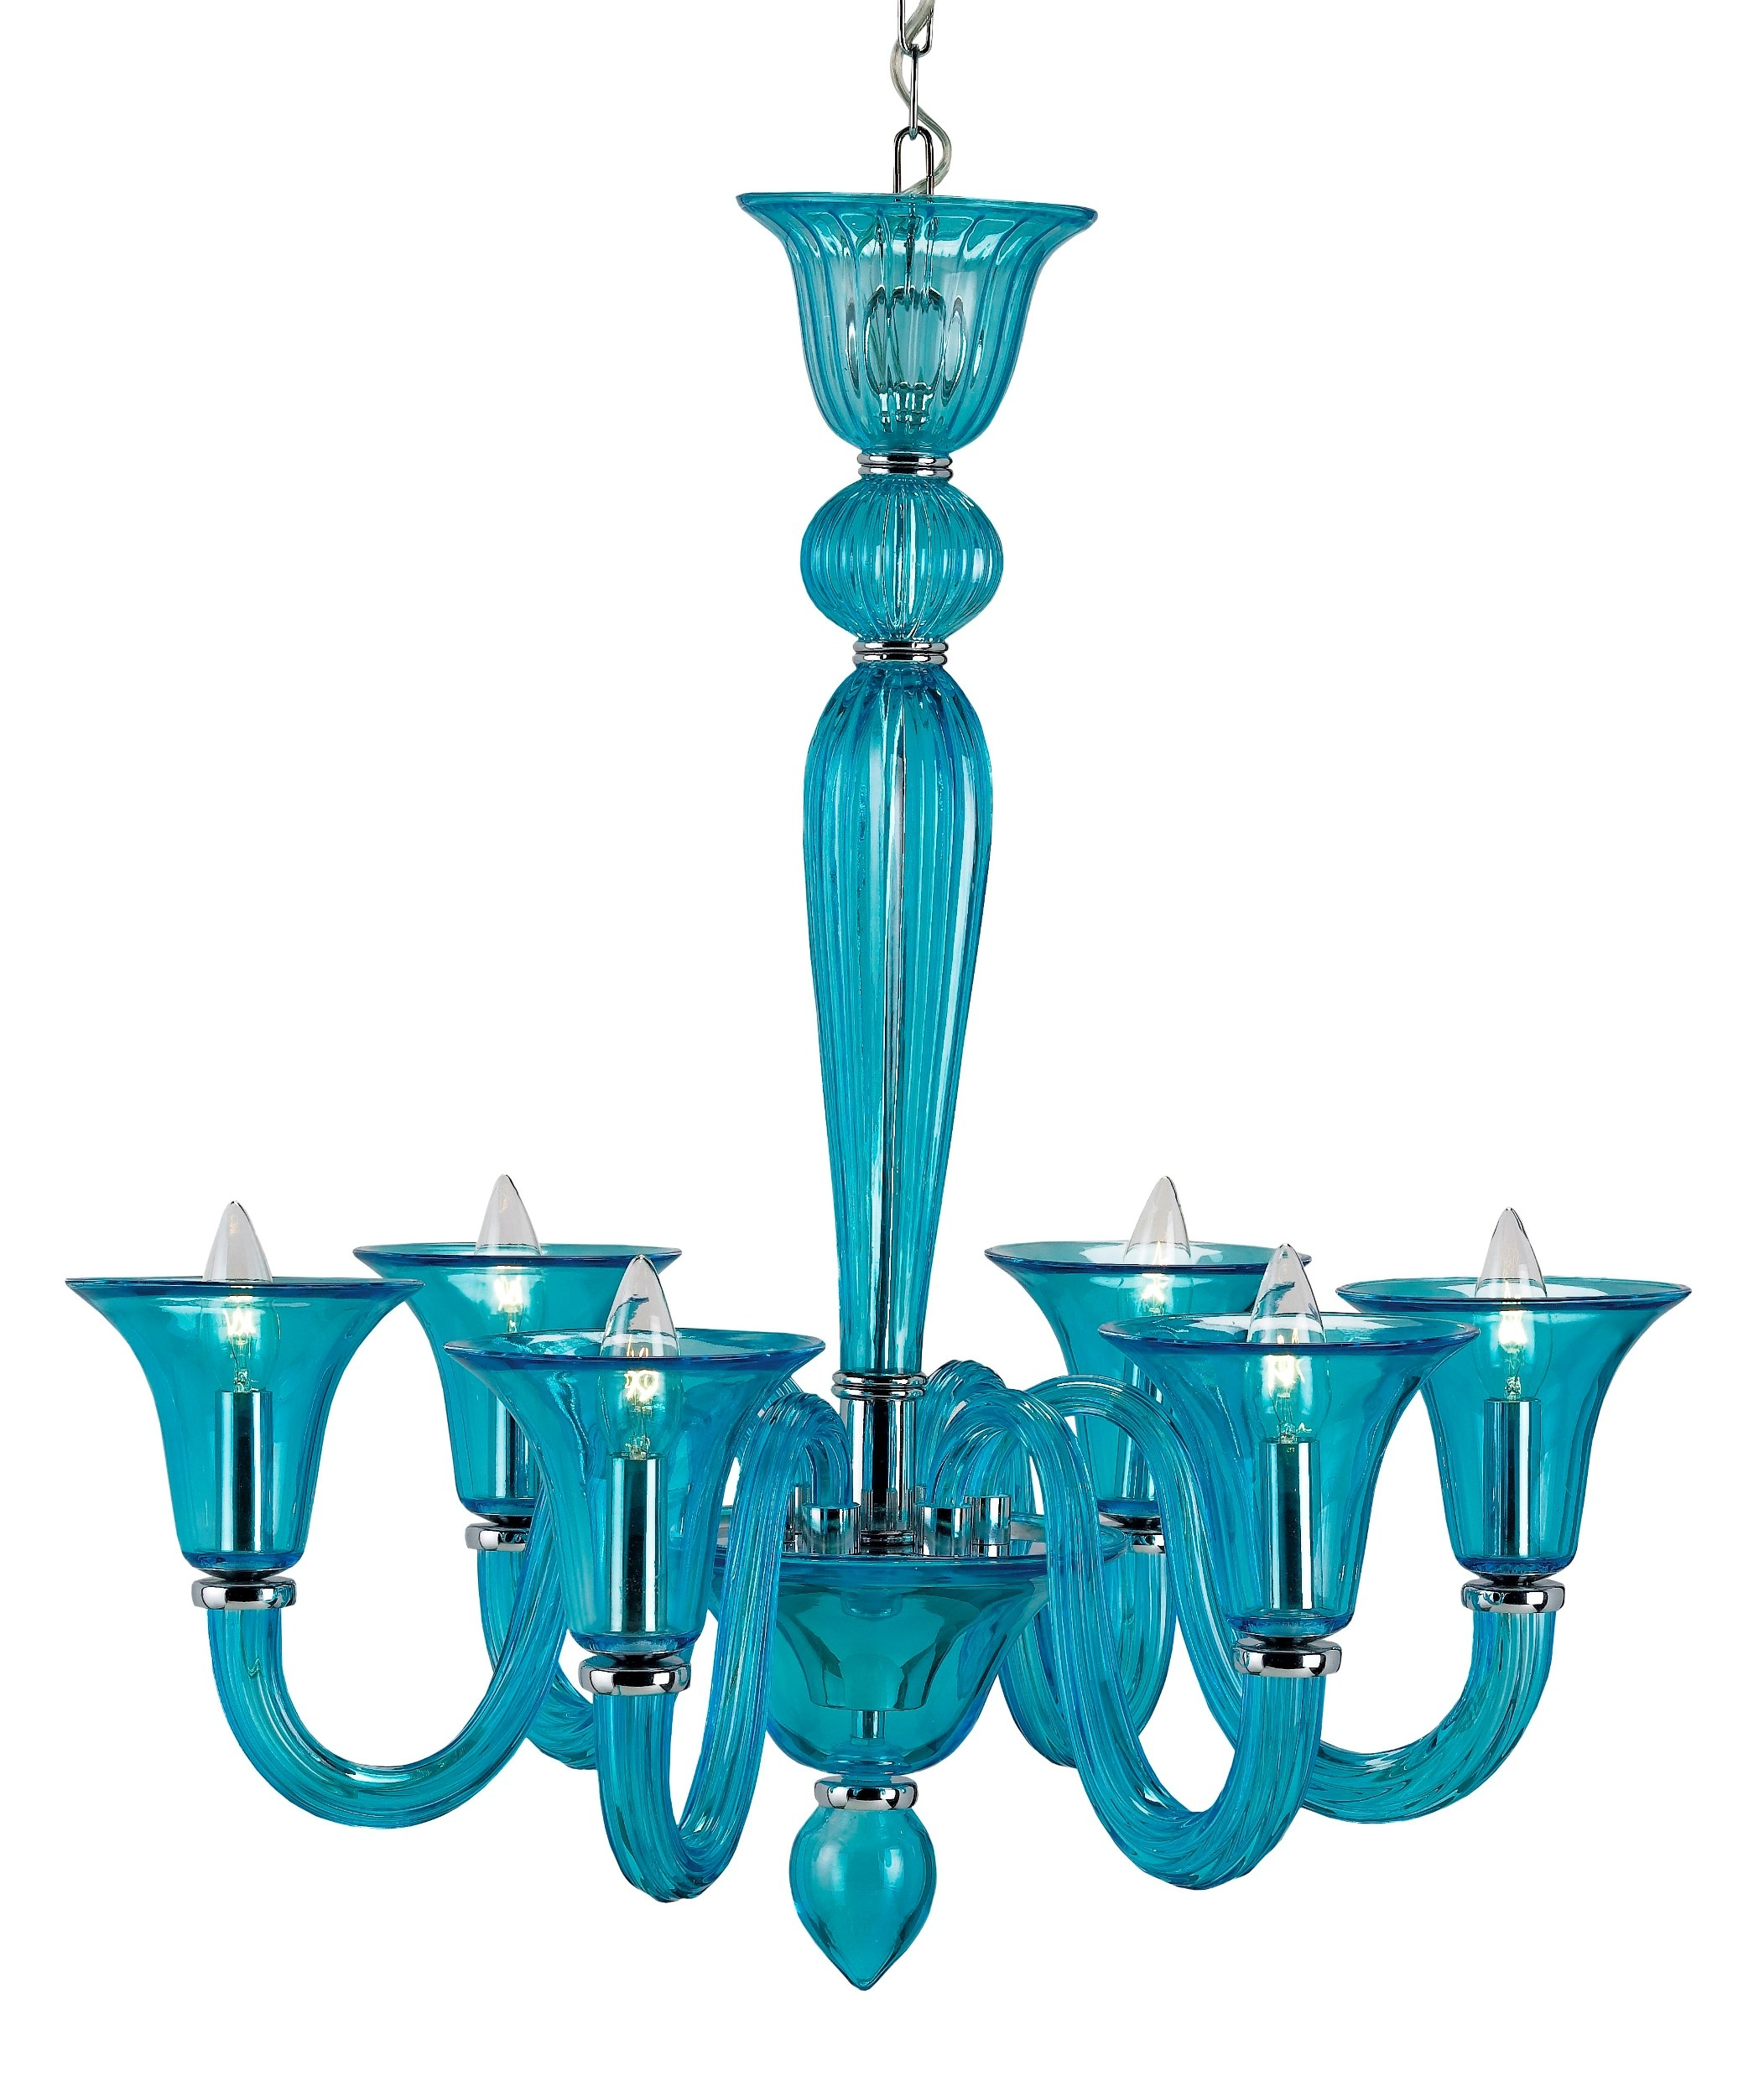 Chandeliers Angersteins Lighting Design Center Pertaining To Turquoise Blue Glass Chandeliers (Image 8 of 25)